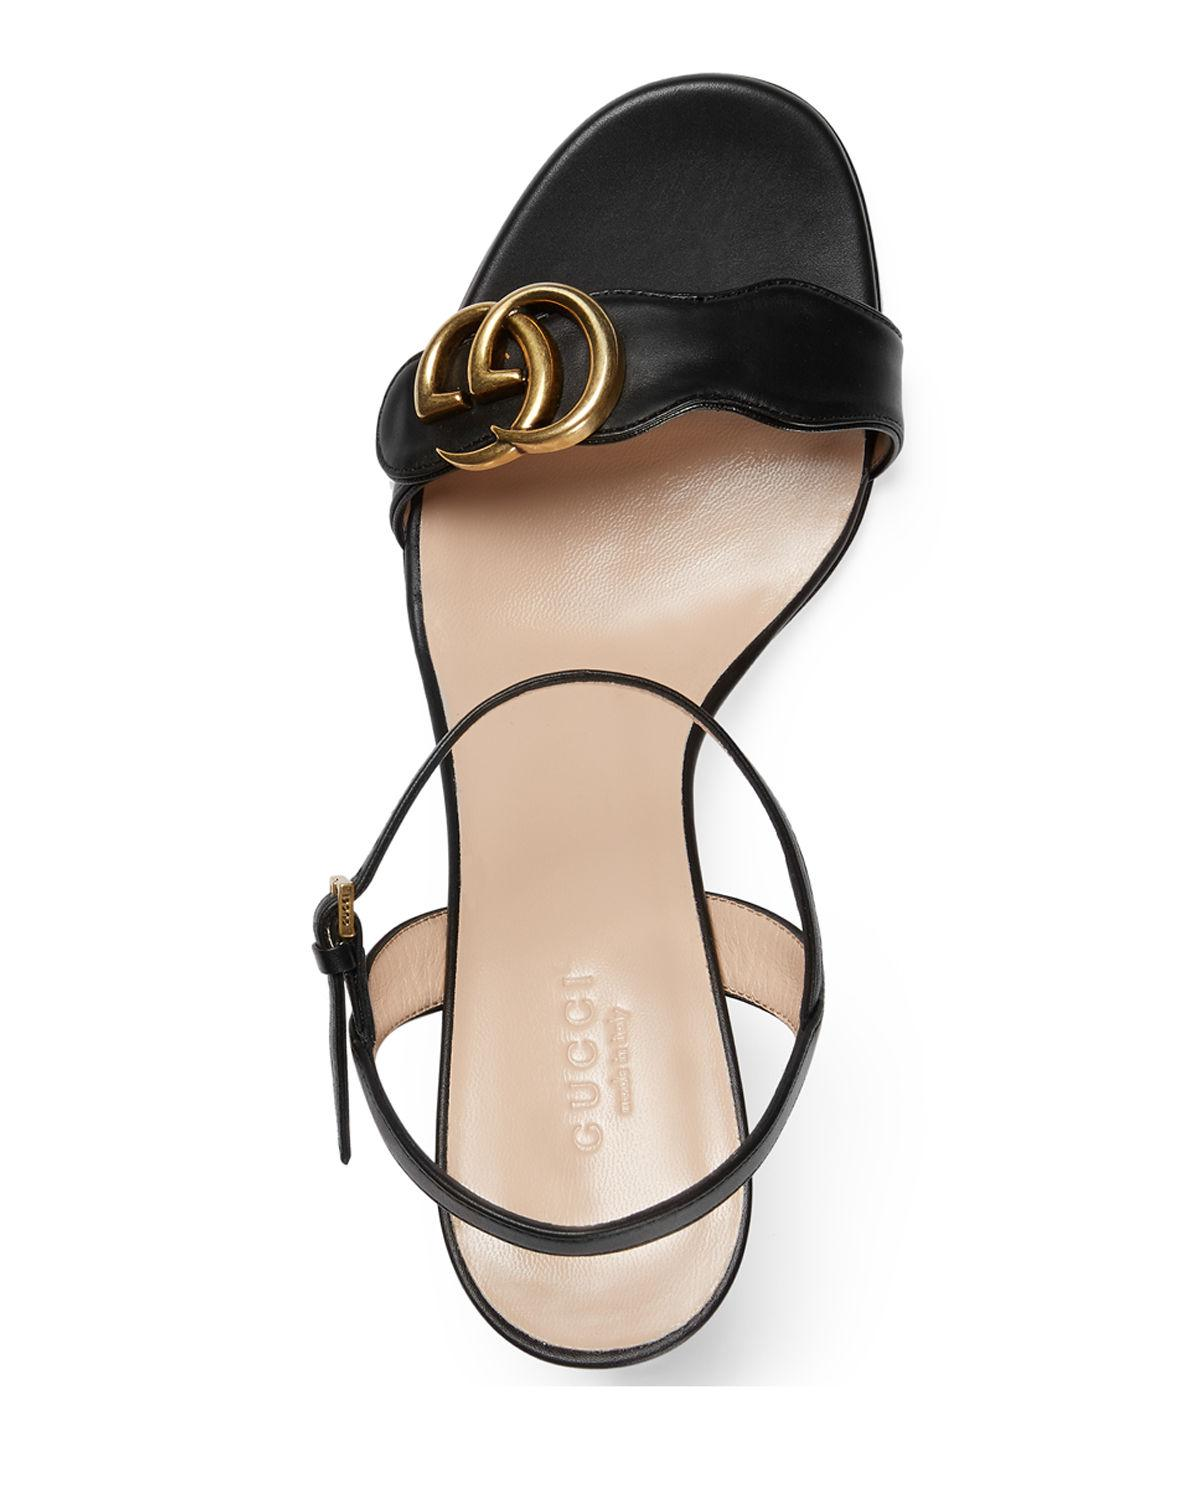 f7e5c991dc9 ... Marmont Leather GG Block-heel Sandals - Lyst. View fullscreen